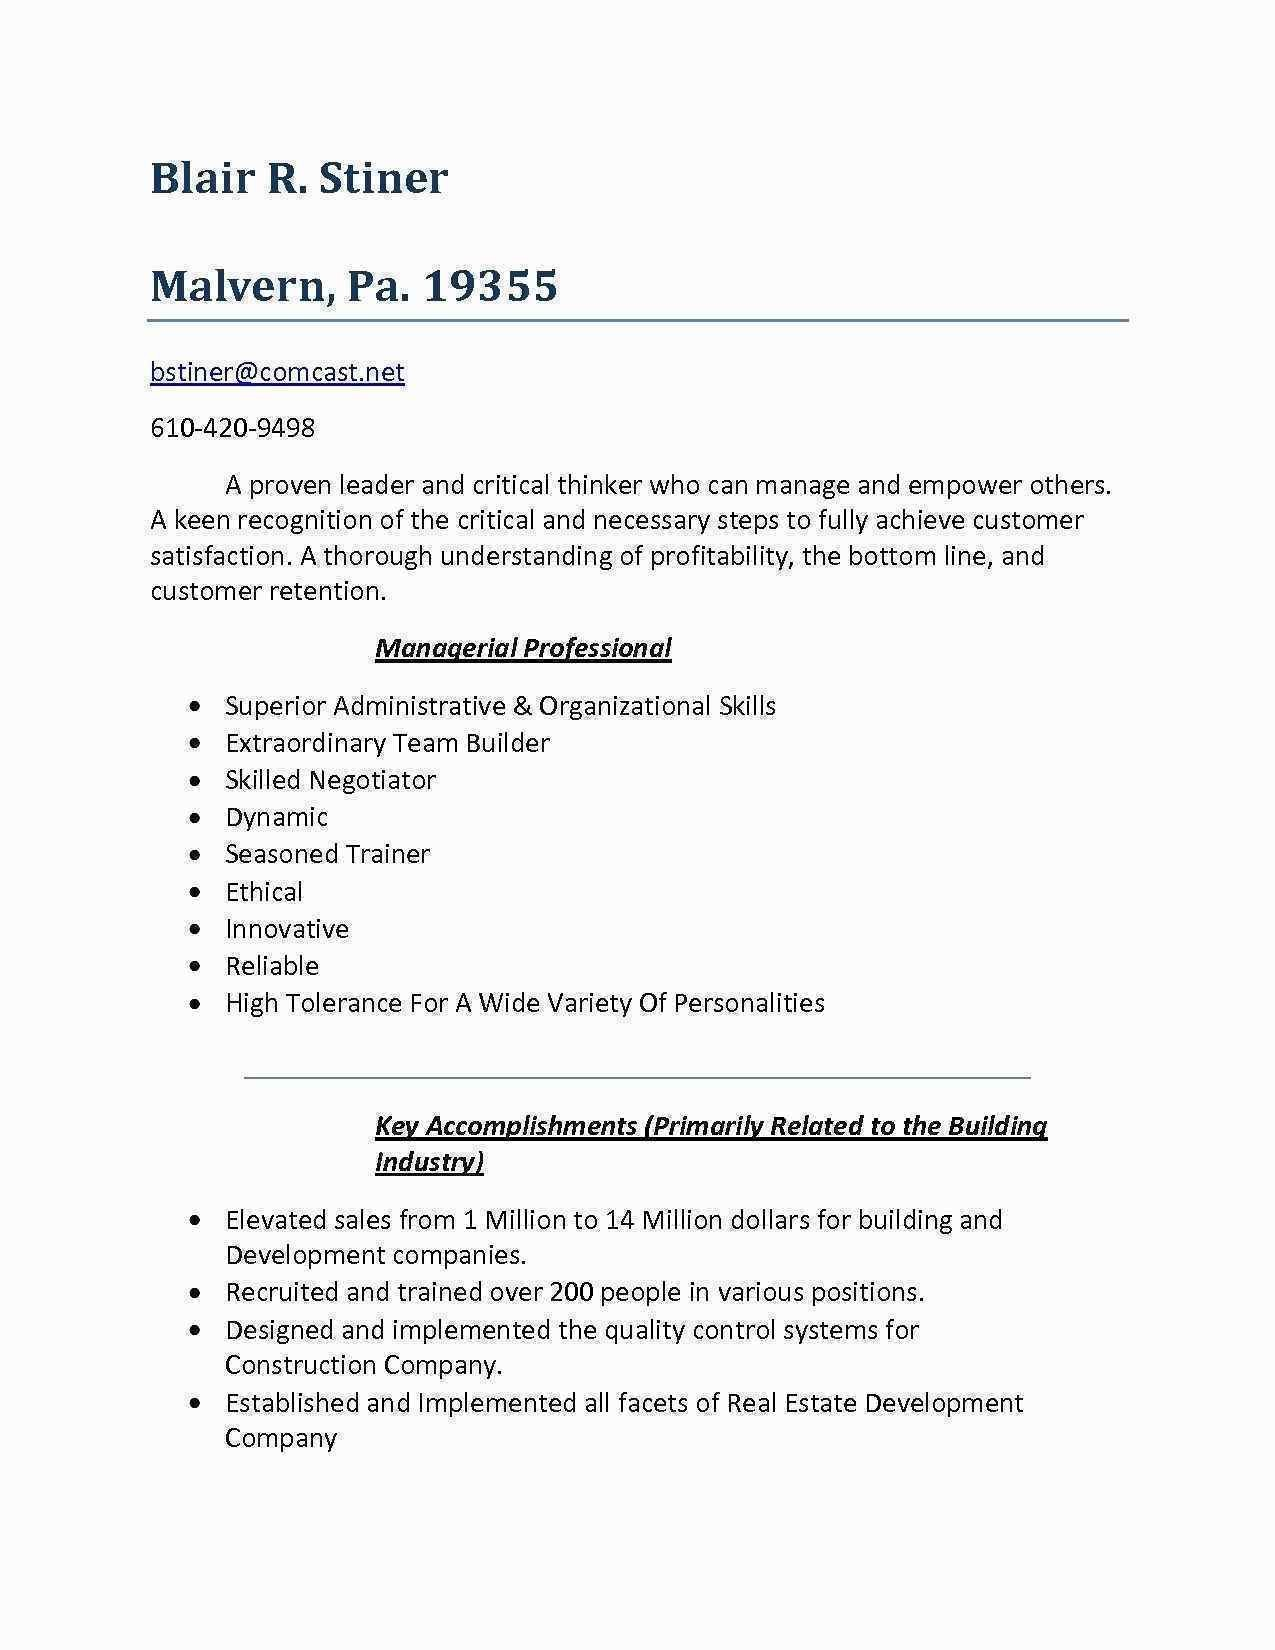 System Engineer Resume - Quality Engineer Resume Valid Cover Letter for System Engineer